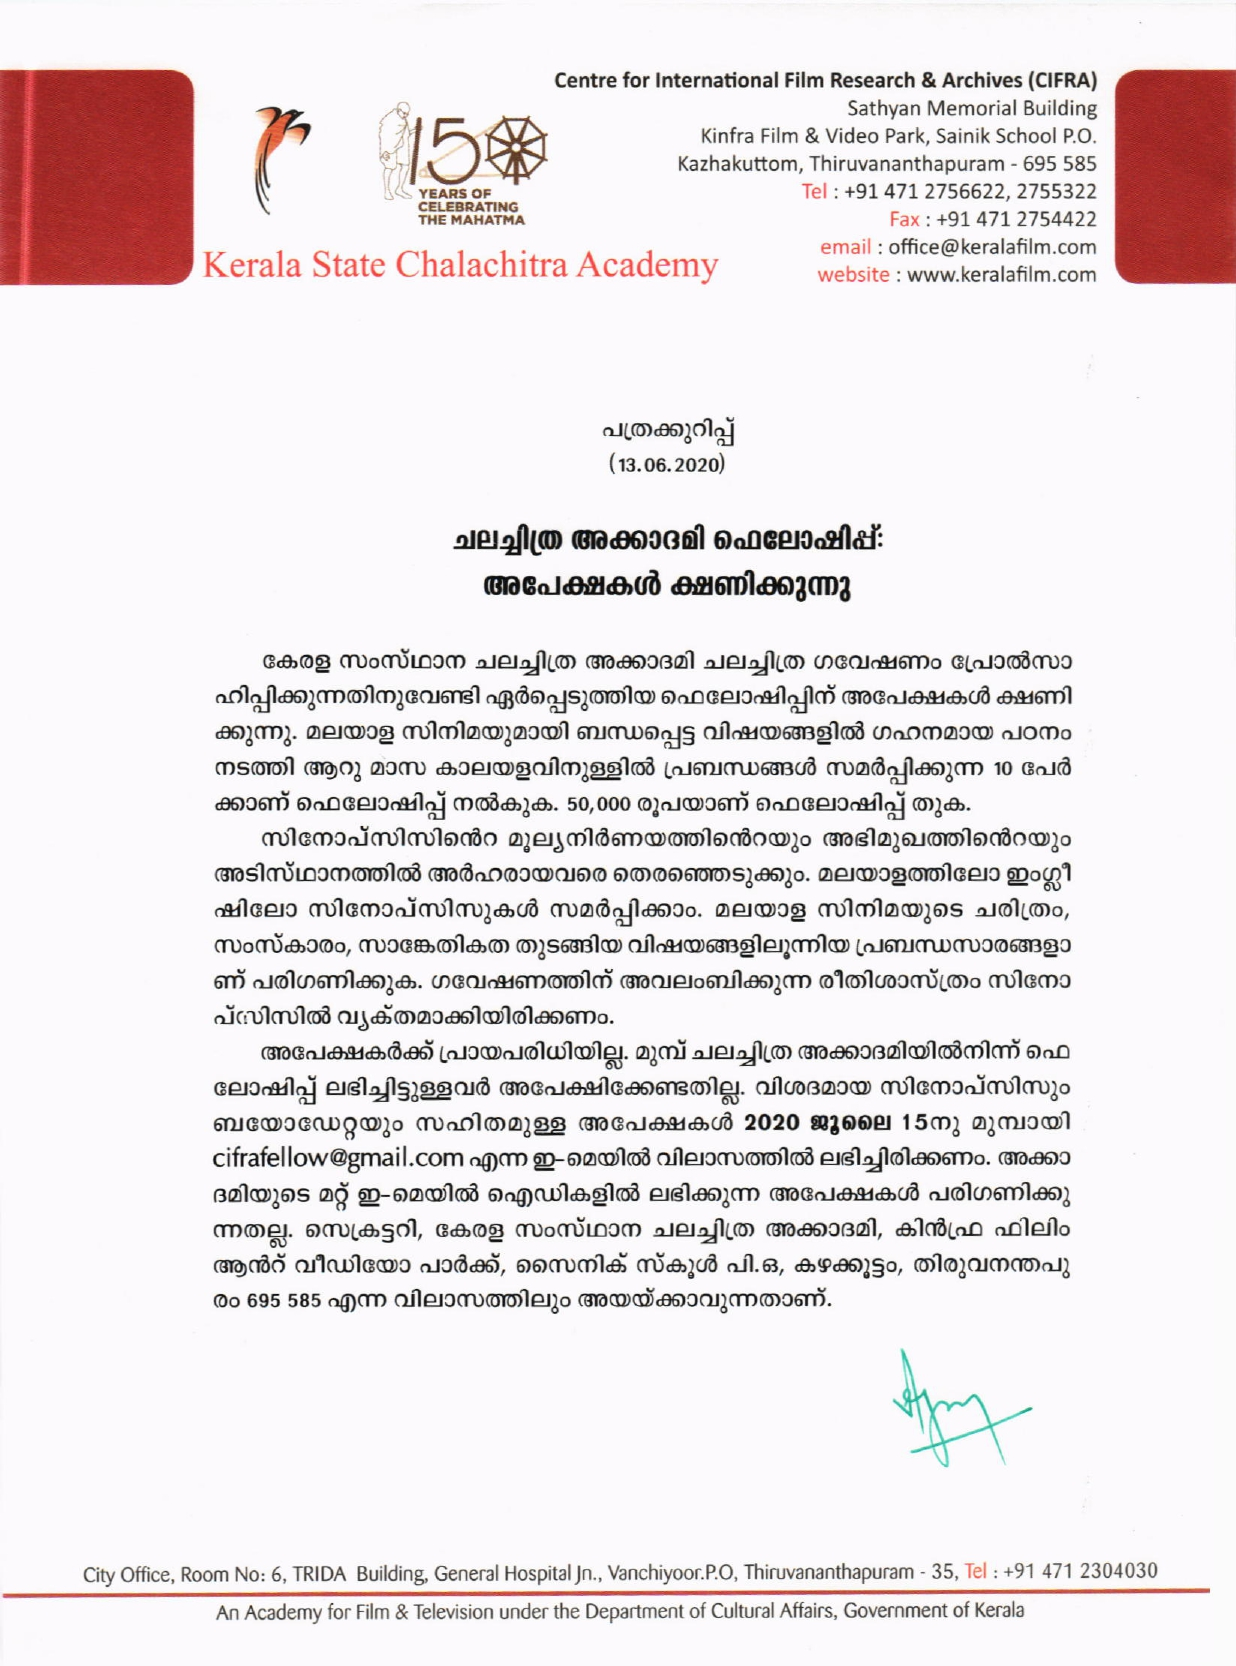 KSCA Fellowship Press release 13.06.2020 page-0001